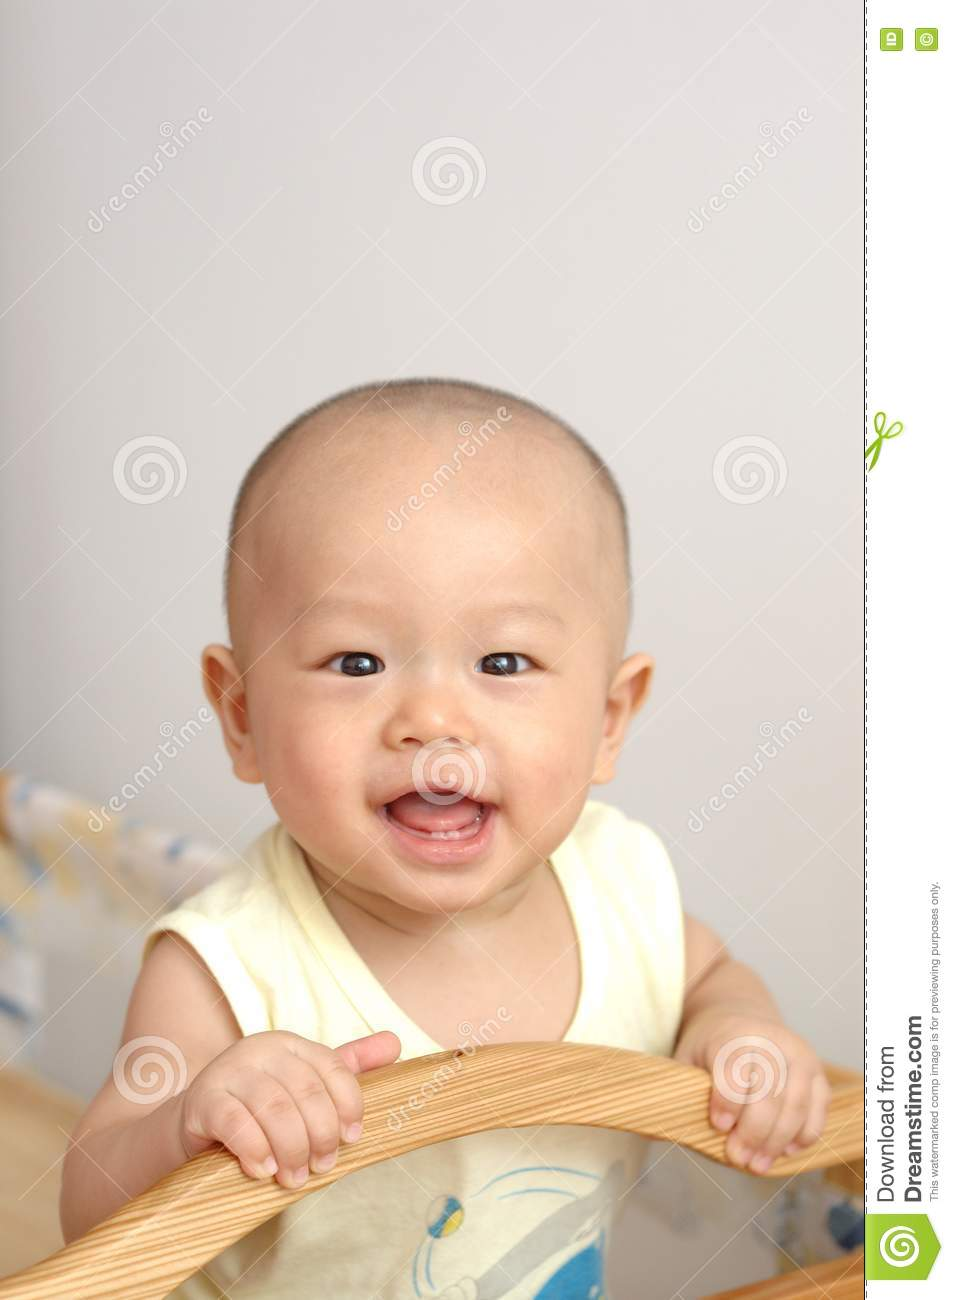 portrait of cute baby - photo #16